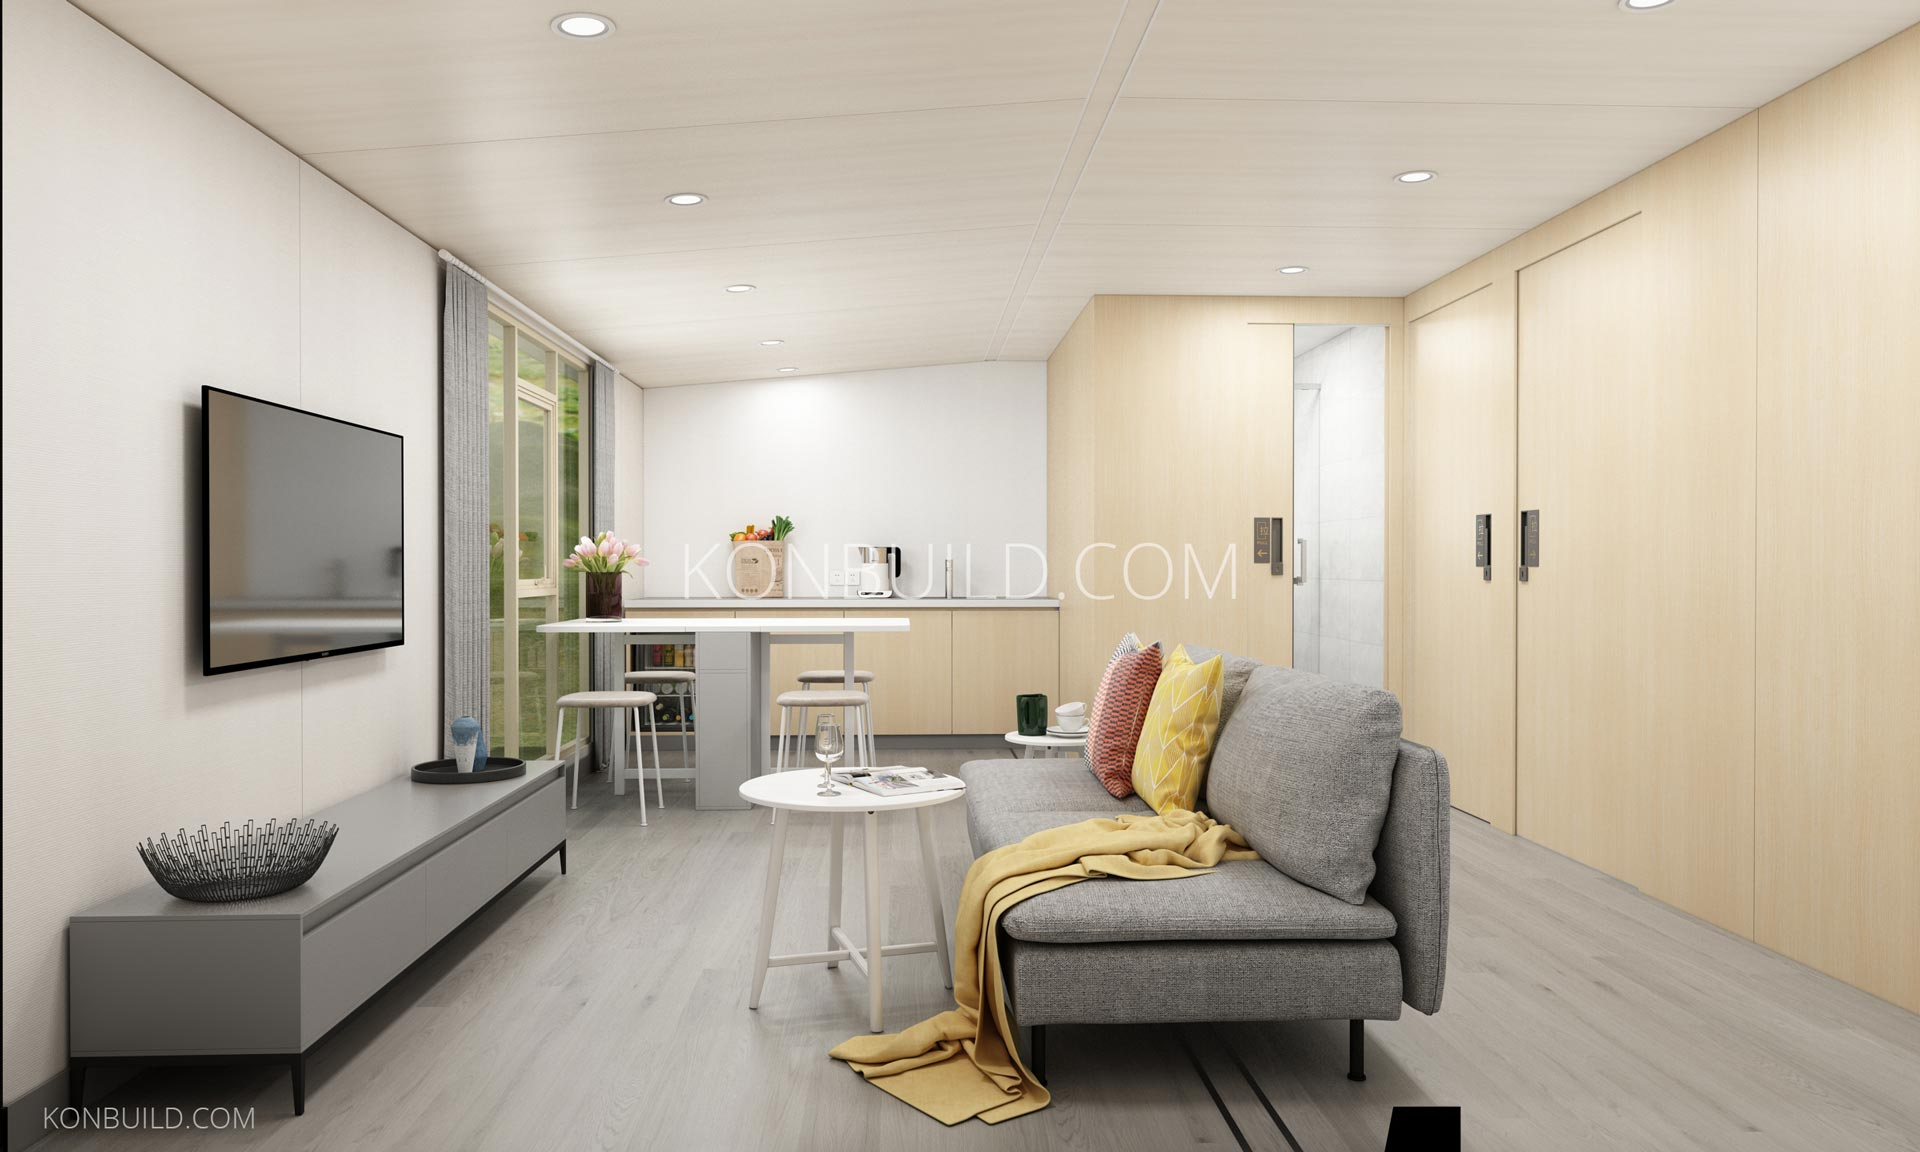 Expandable container home luxury interior